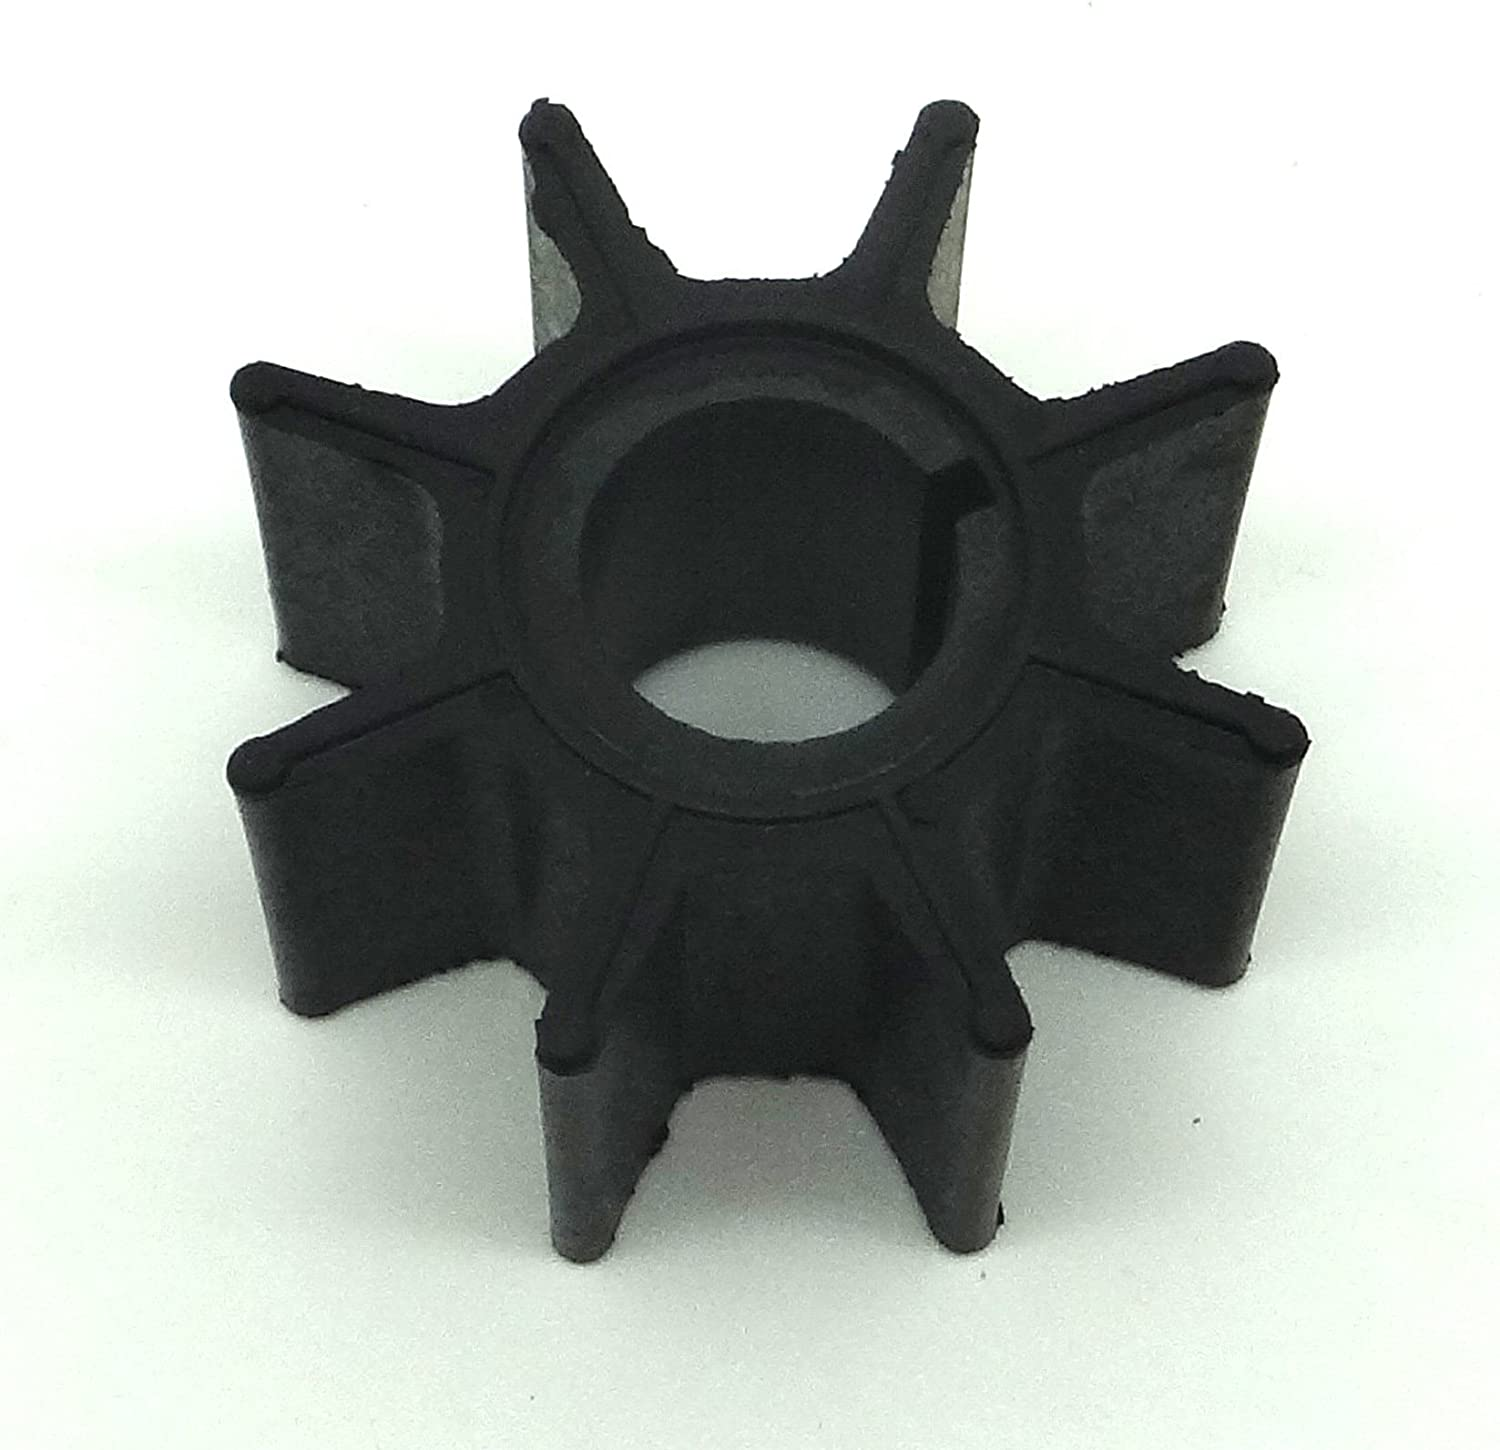 Outboard Water Pump Impeller 334650210 188921 for Tohatsu Nissan 9.9HP 15HP 18HP 20HP Boat Motor